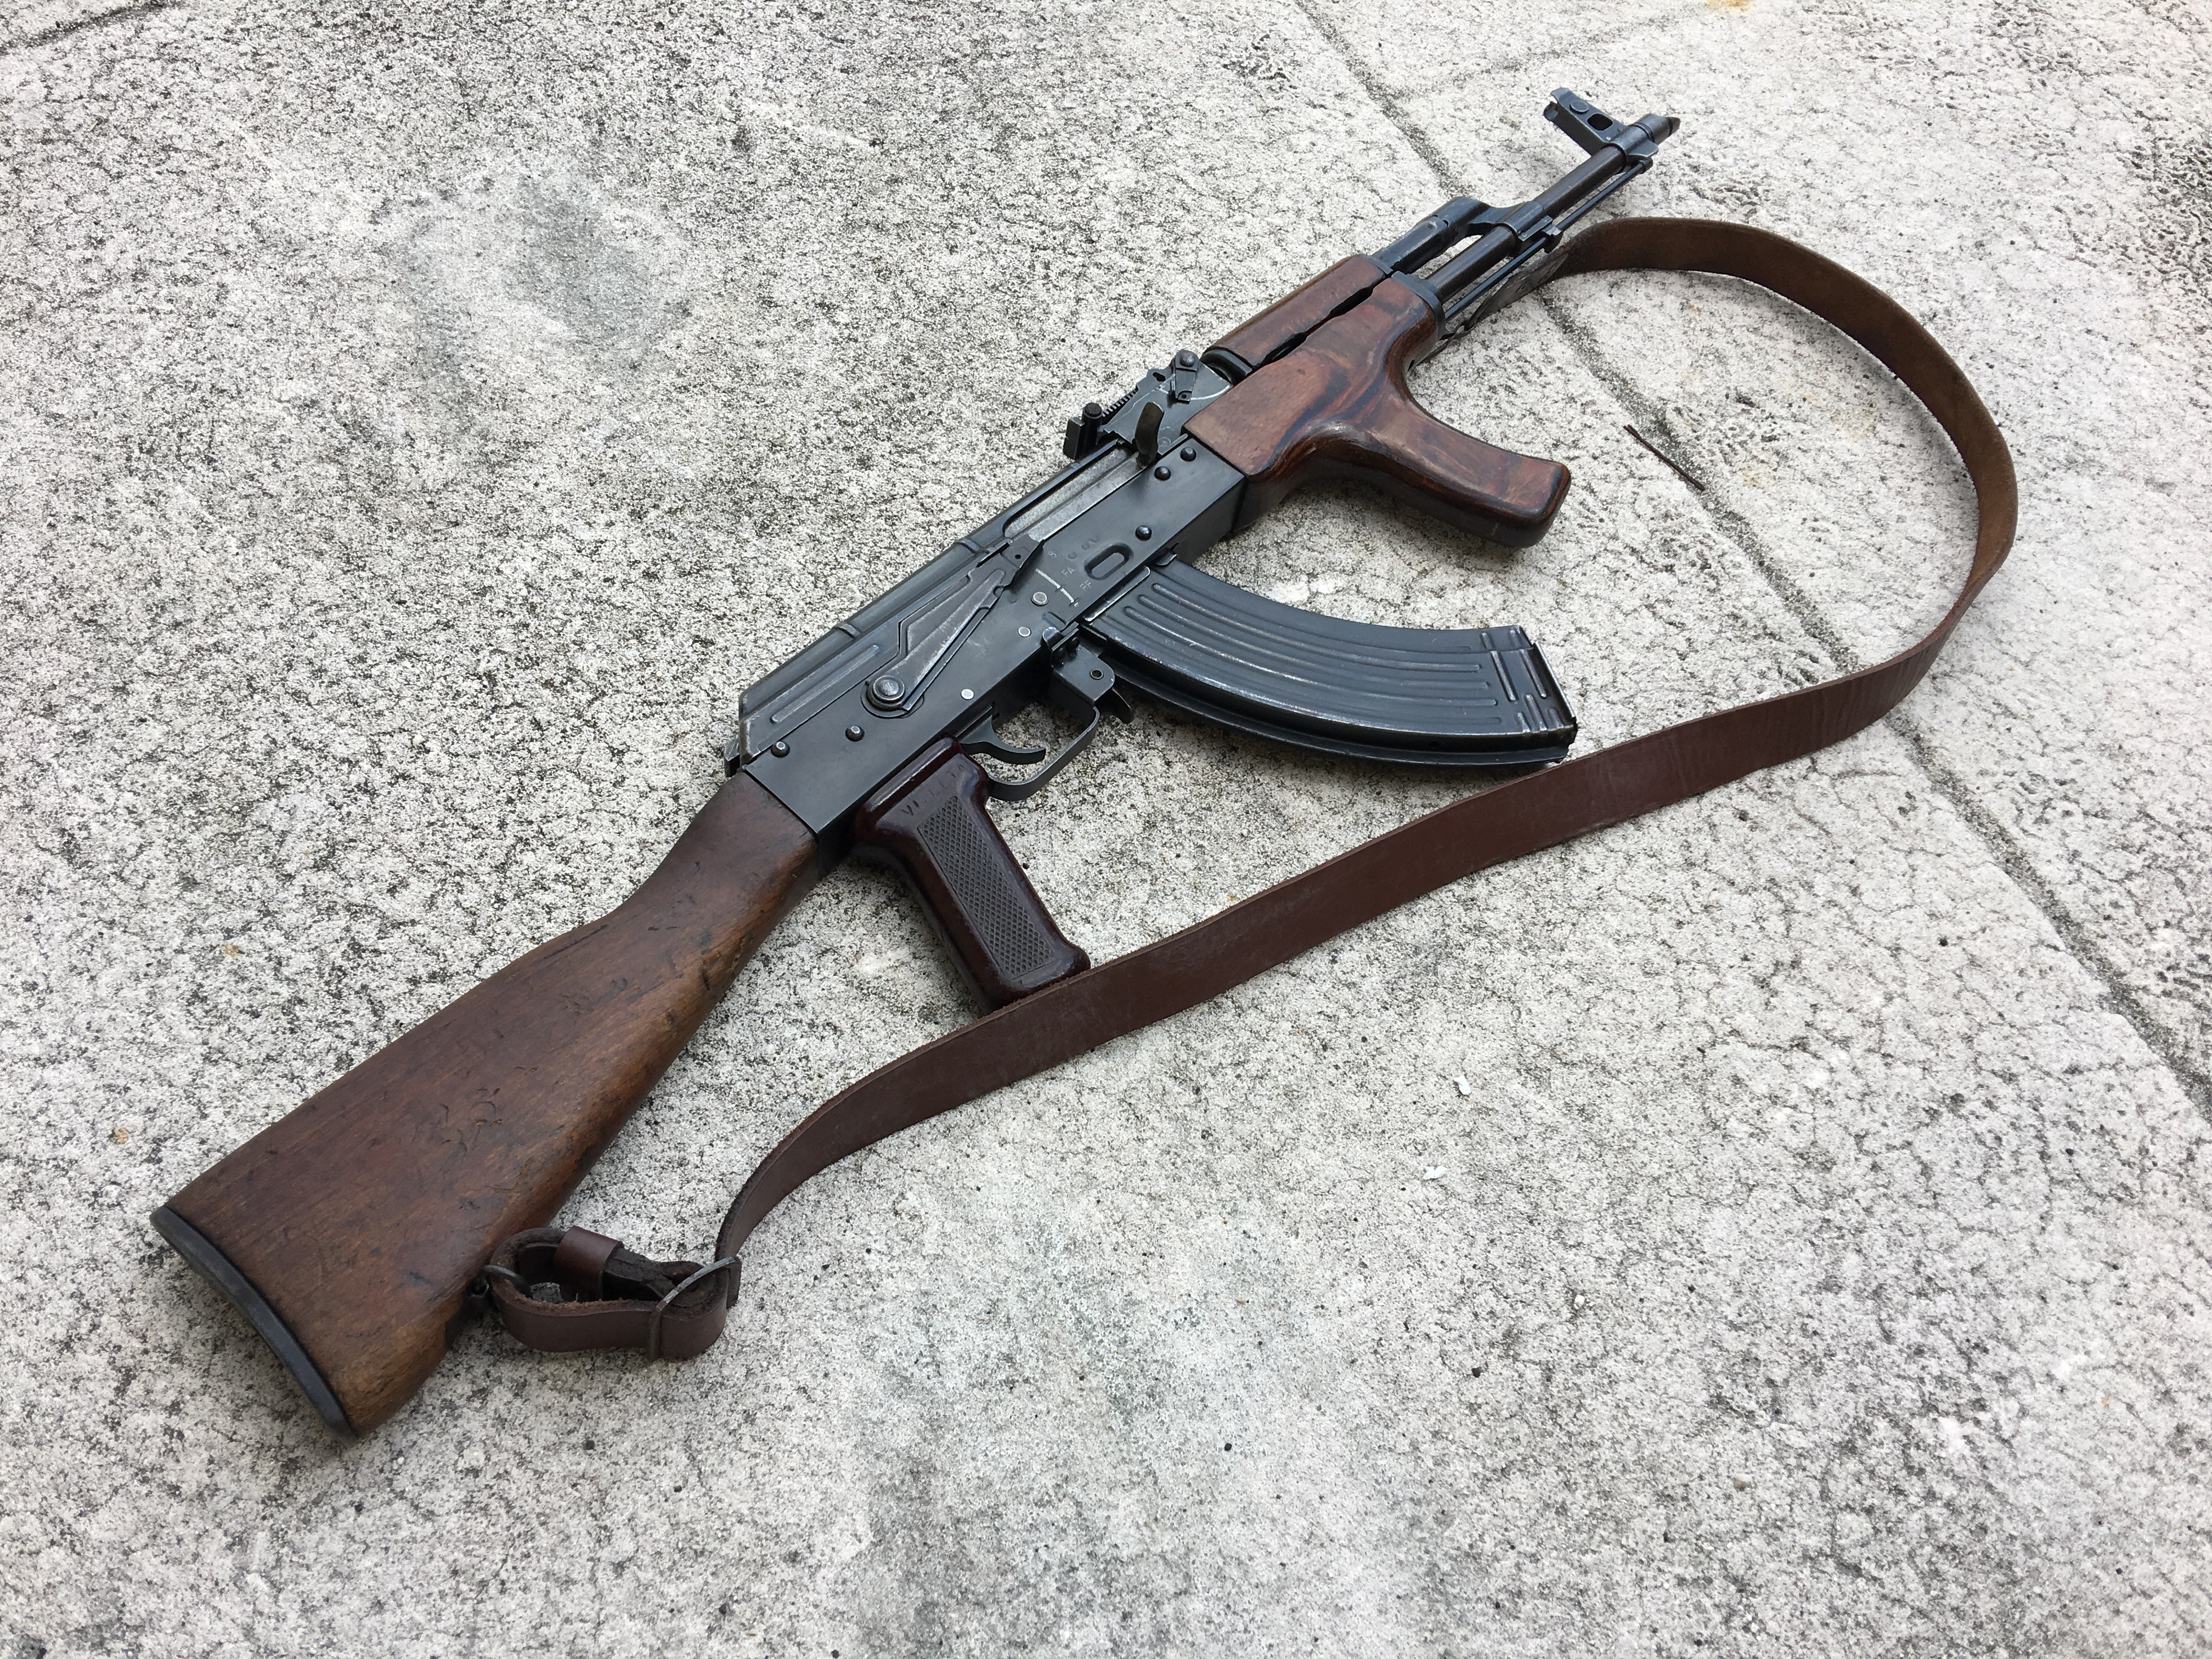 Two Rivers Arms: The American AK Manufacturer You've Never